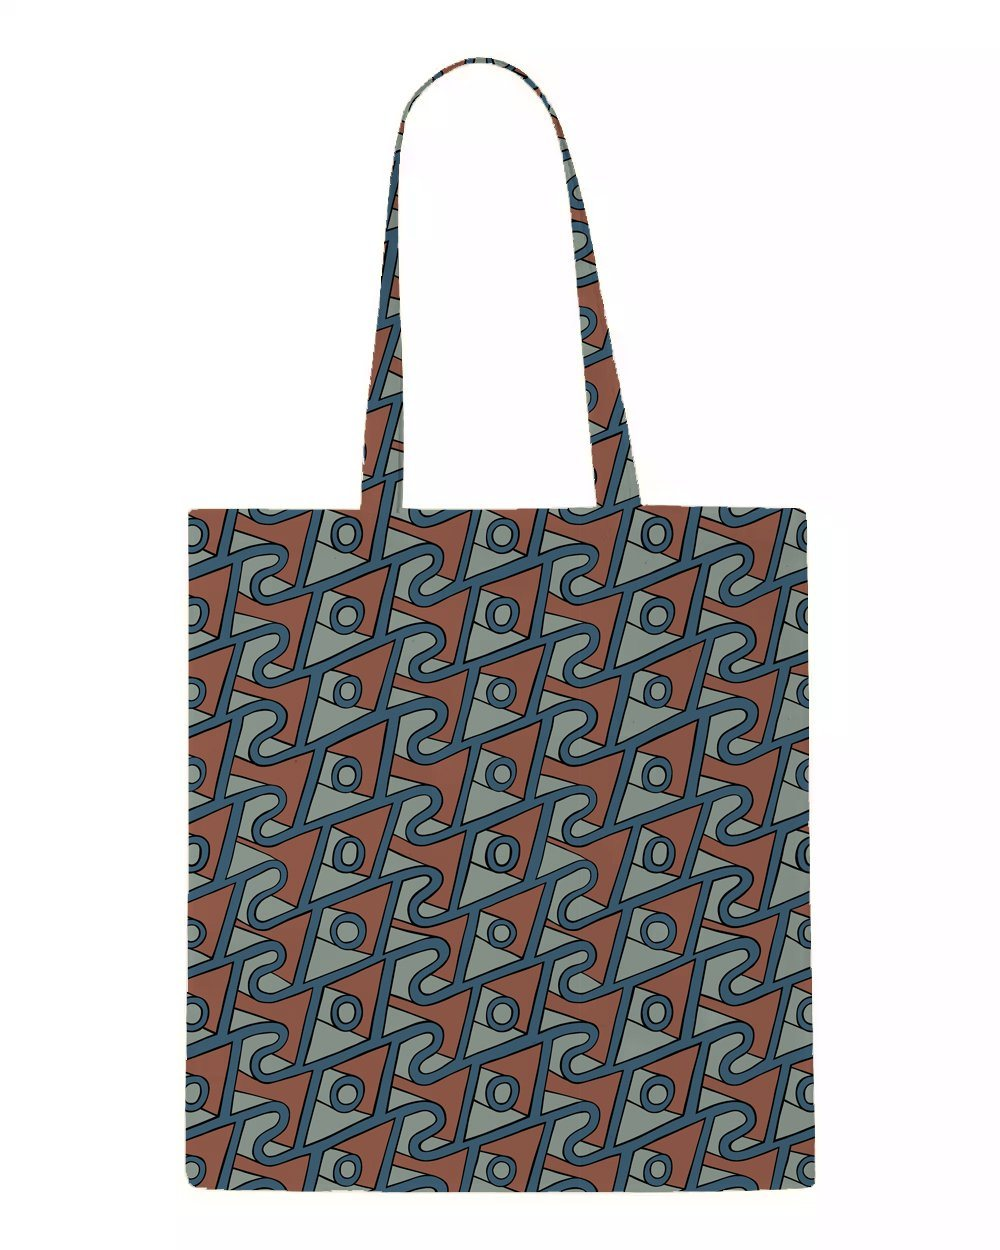 Bawa Tote Bag - Arus Tote Bags The Great Indoors